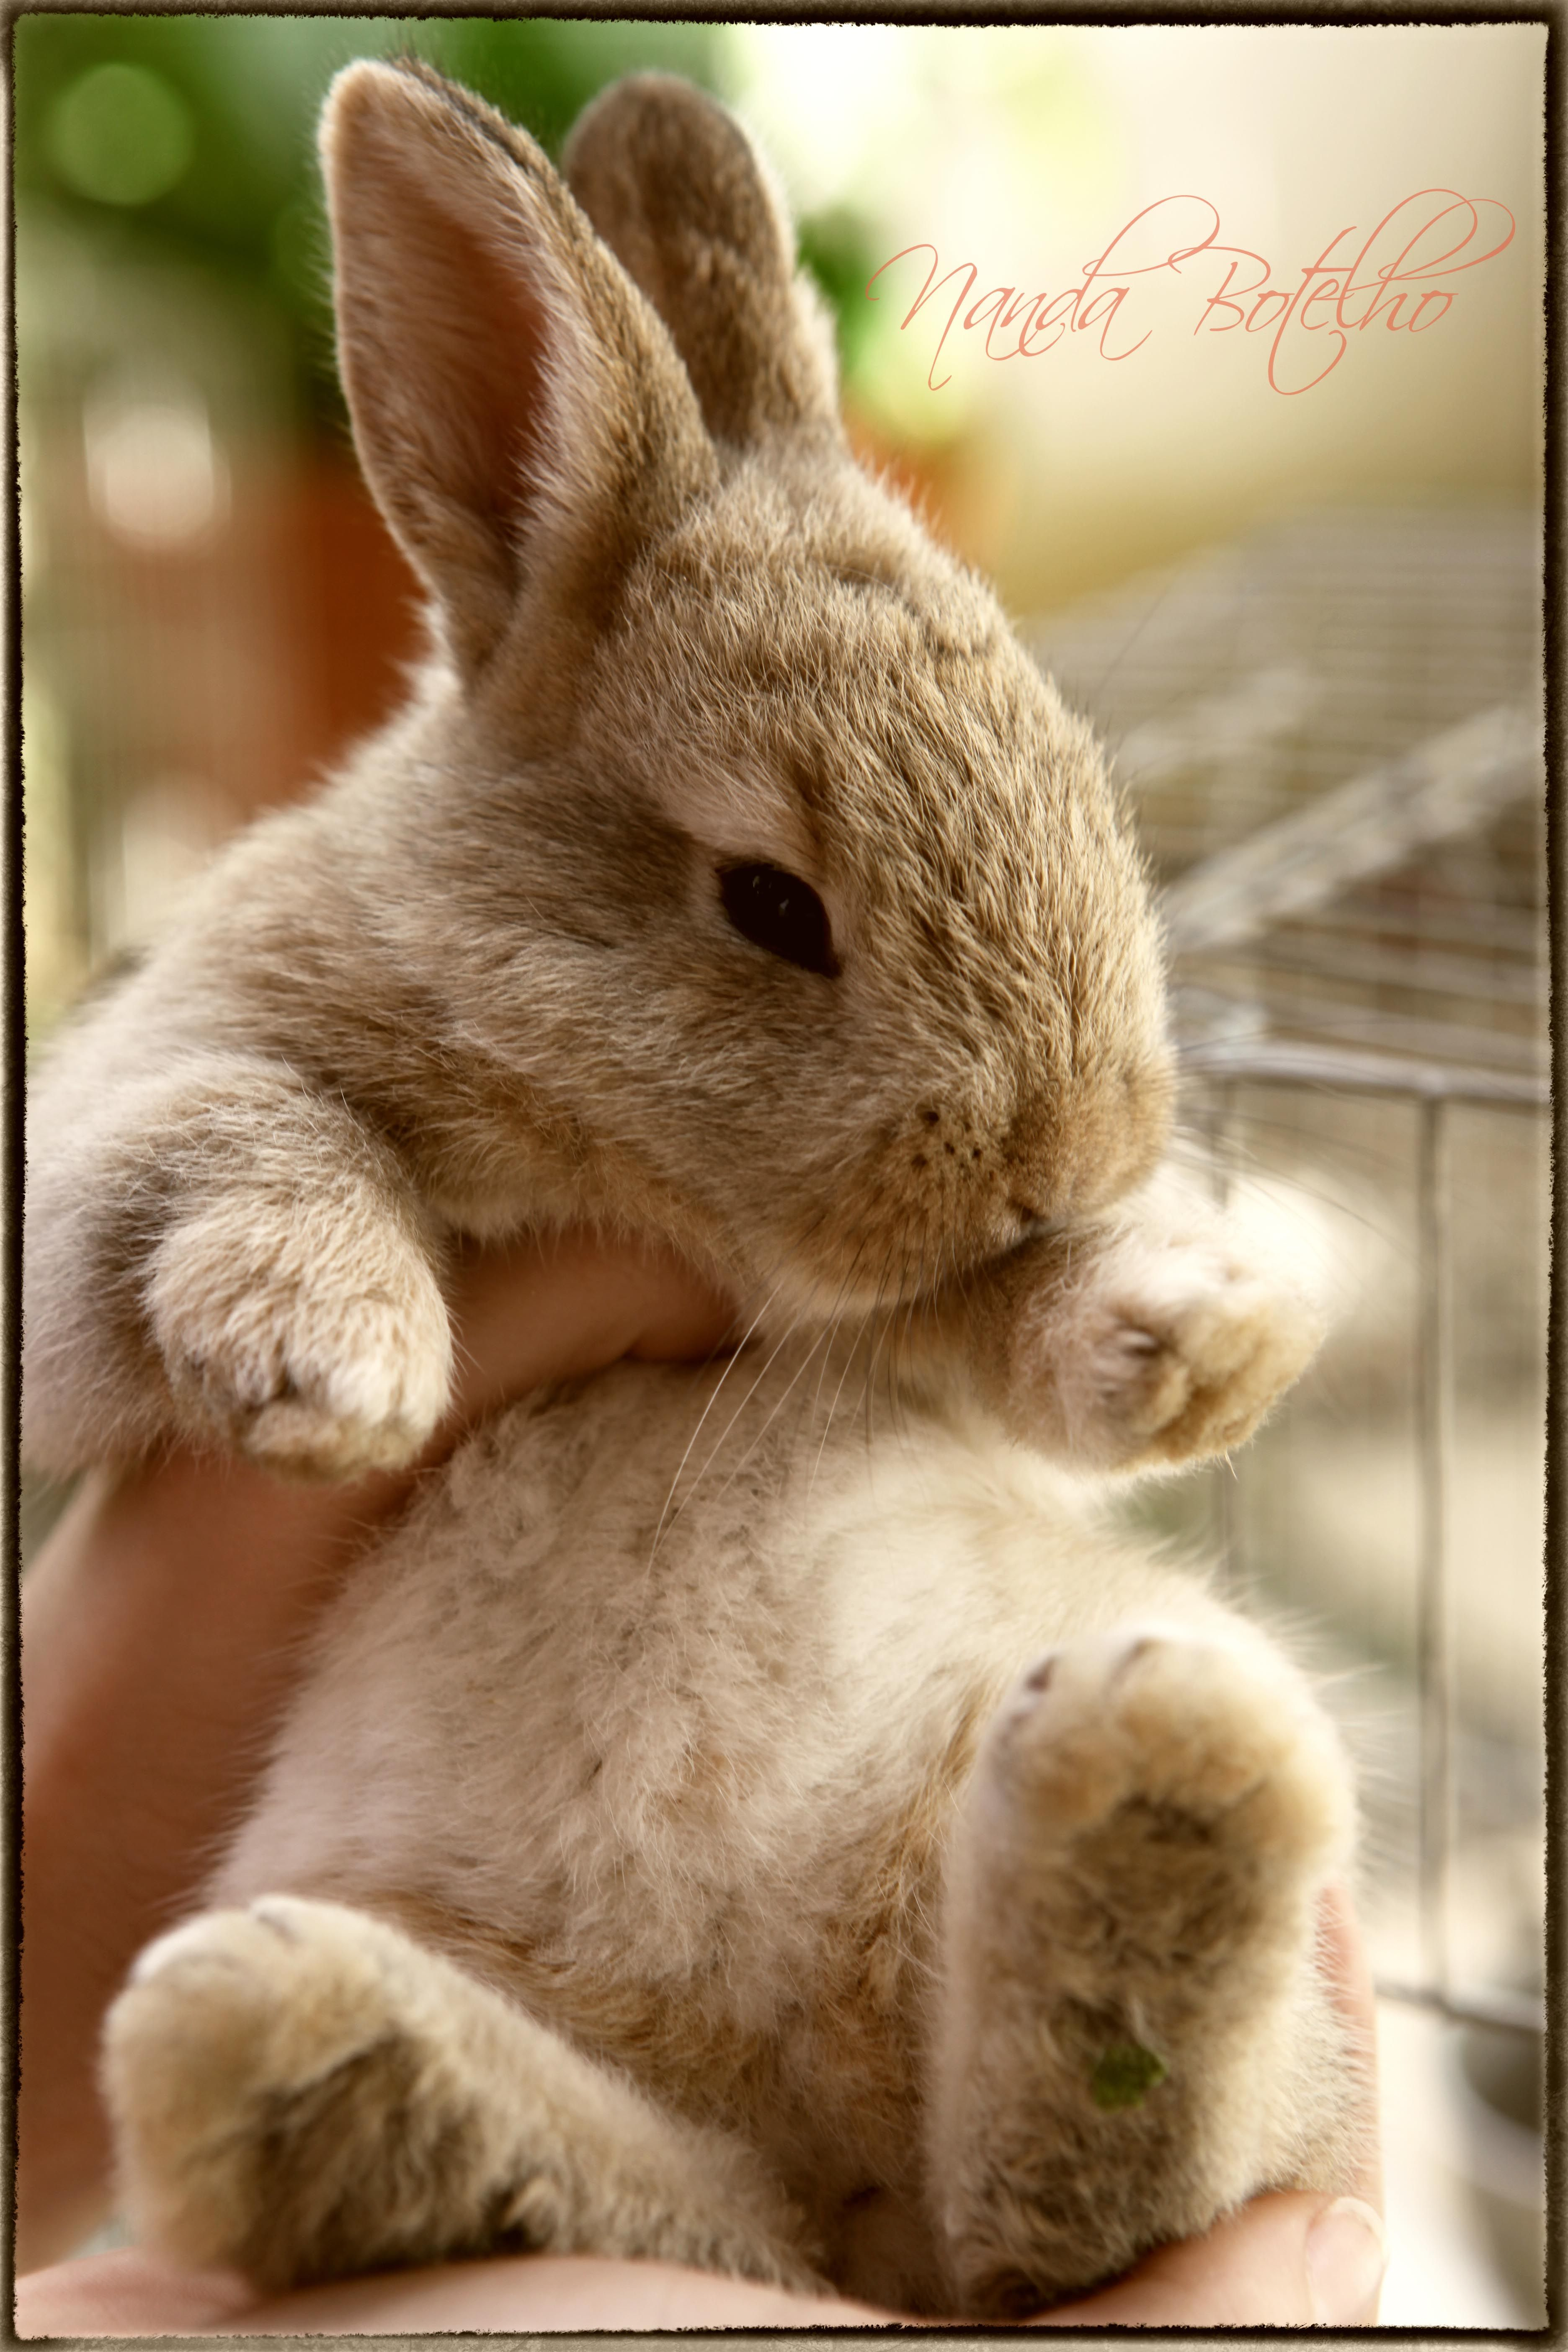 caramelo a cute bunny baby Cute animal pictures, Cute